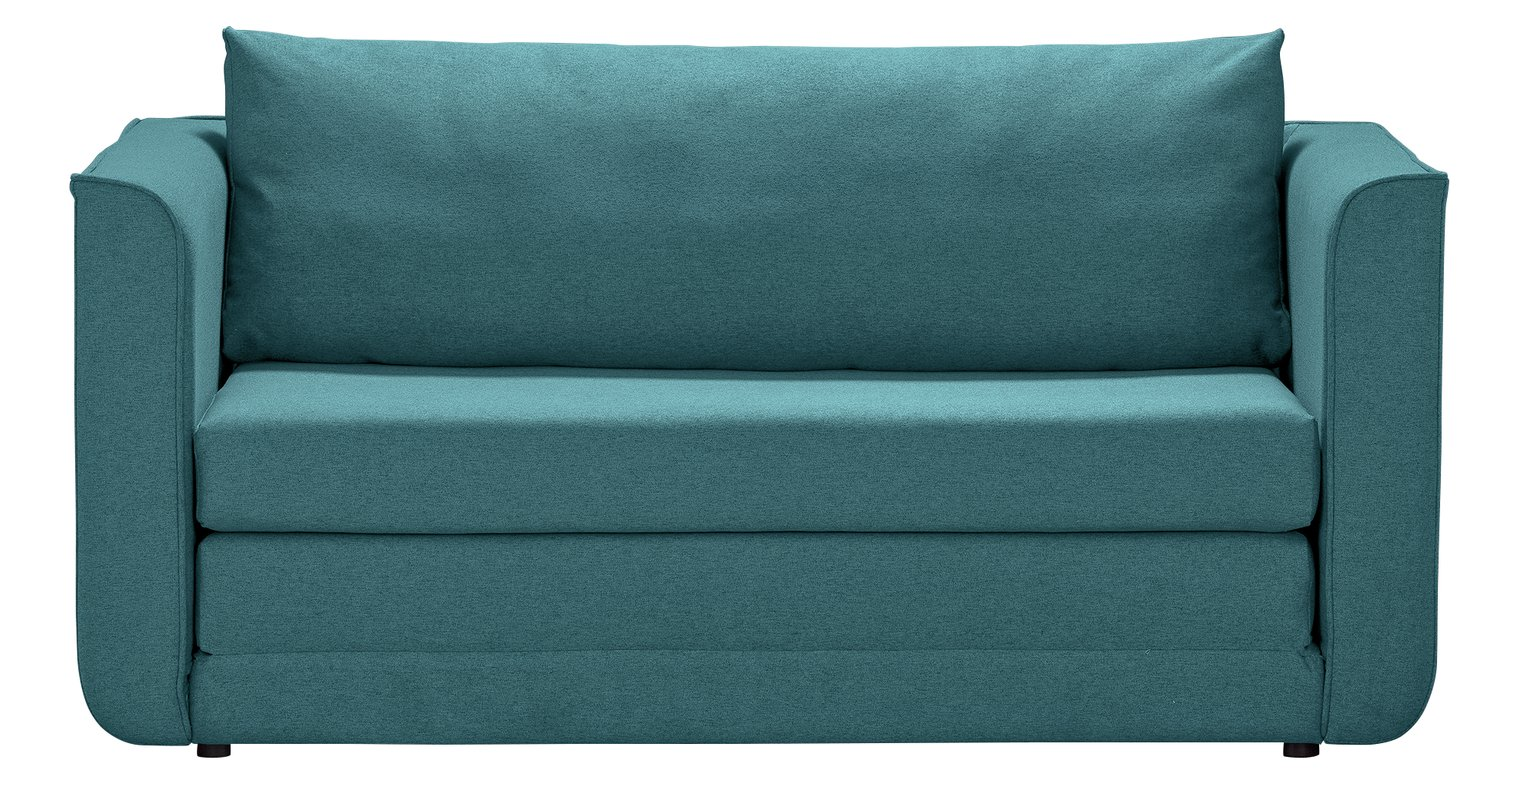 Argos Home Ada 2 Seater Fabric Sofa Bed - Teal